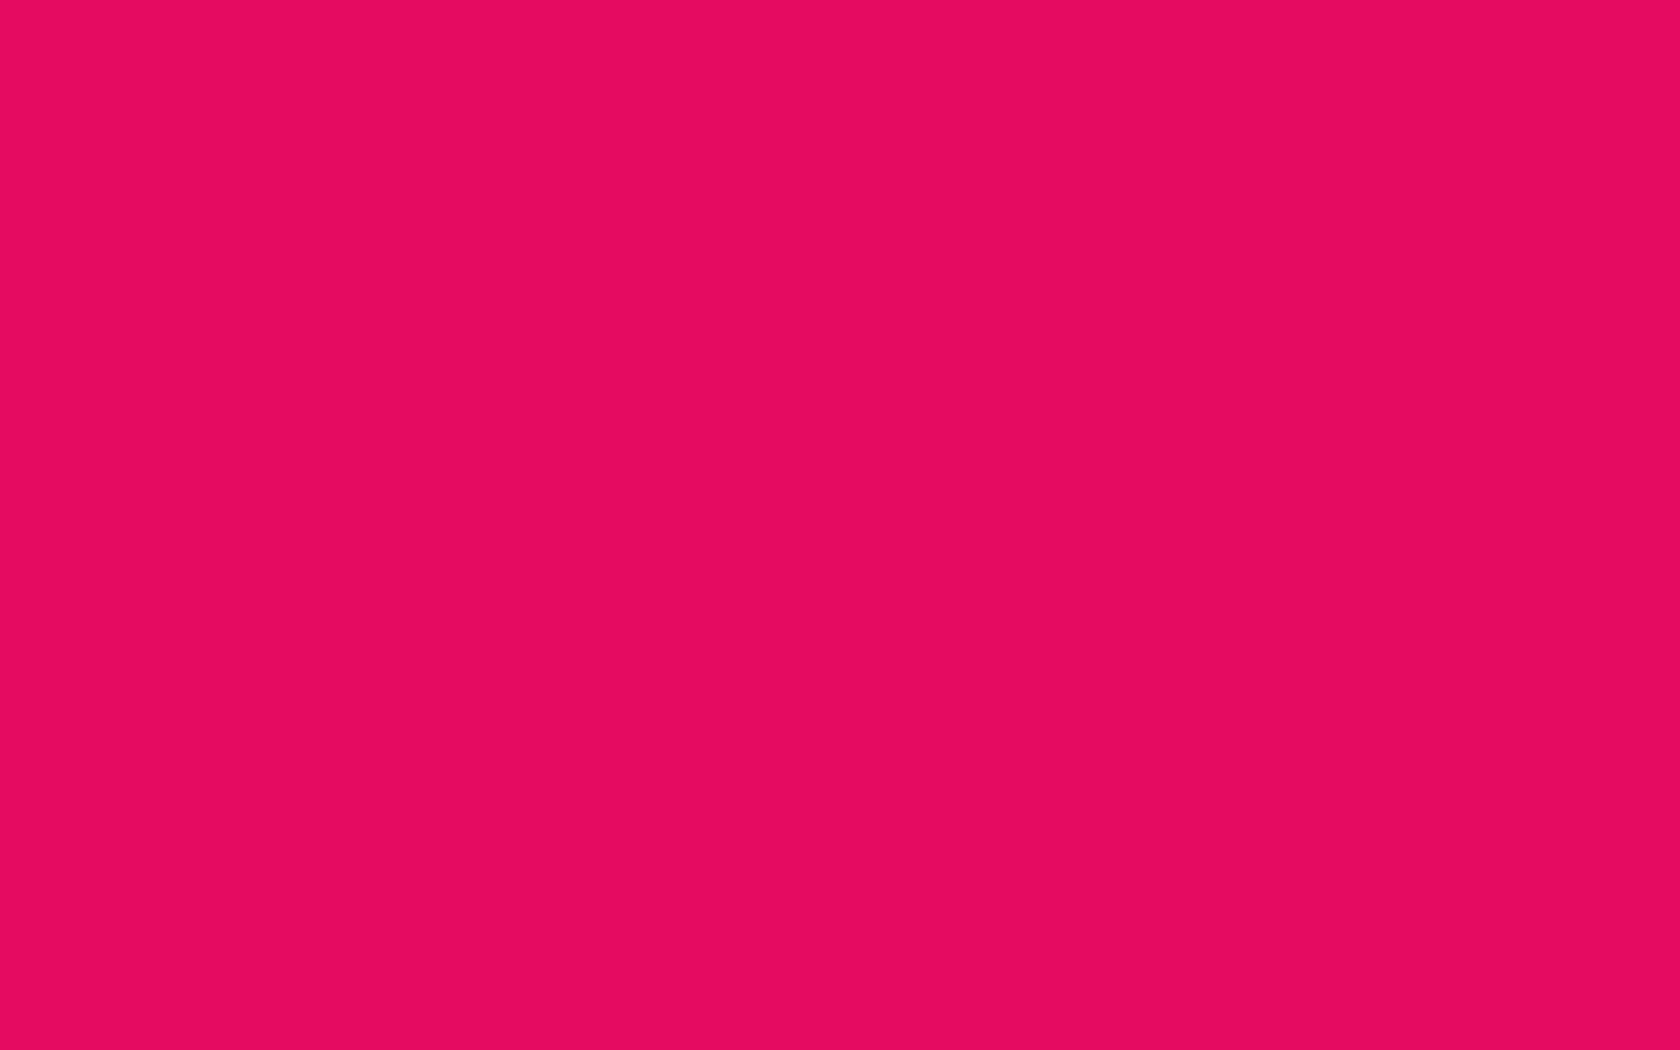 1680x1050 Raspberry Solid Color Background